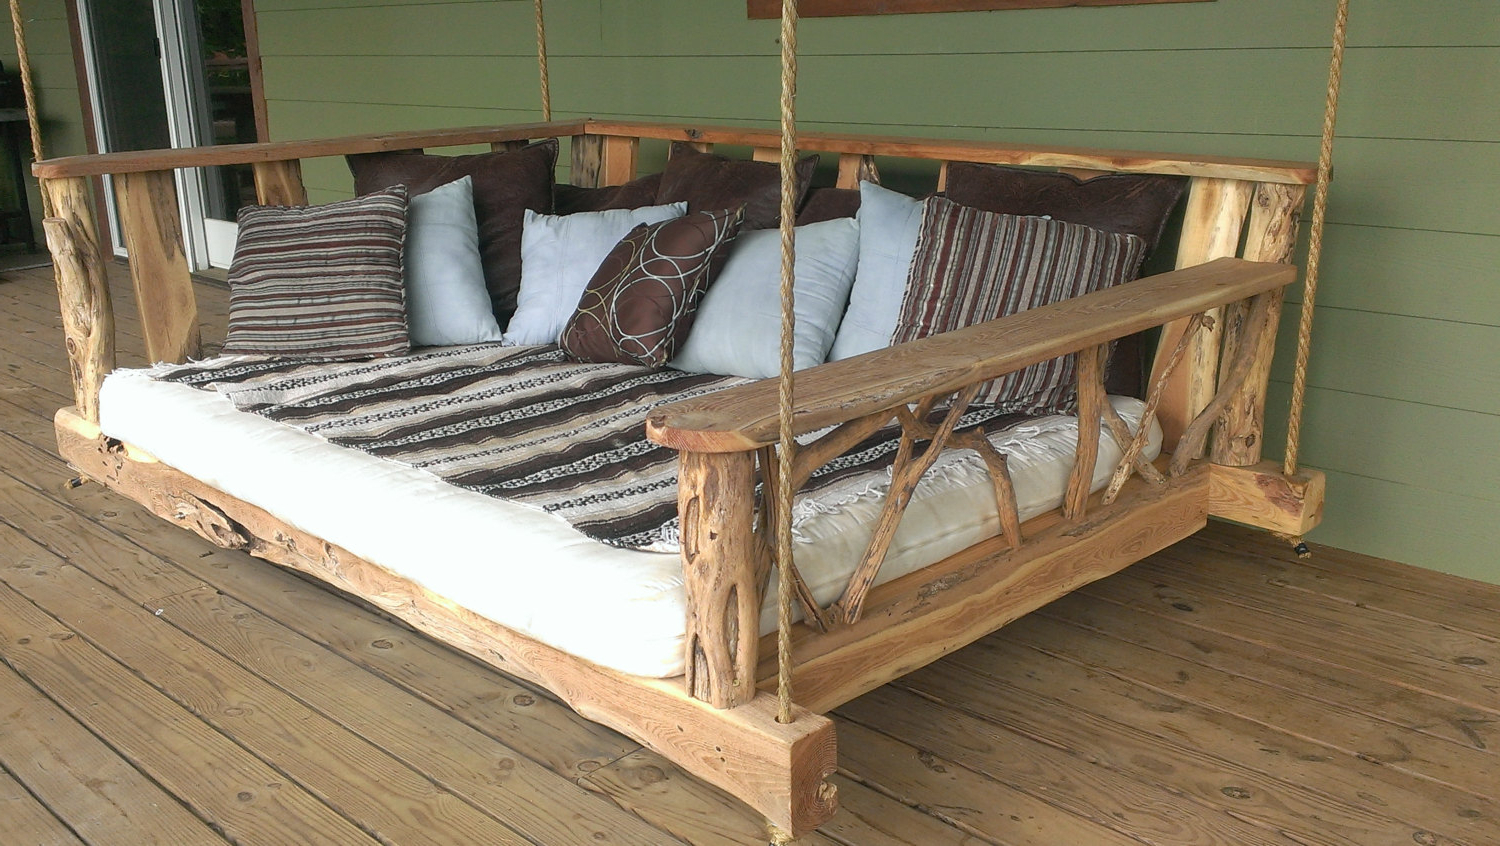 Most Current Daybed Porch Swings With Stand With Regard To 15 Custom Handcrafted Porch Swing Designs – Style Motivation (Gallery 11 of 30)